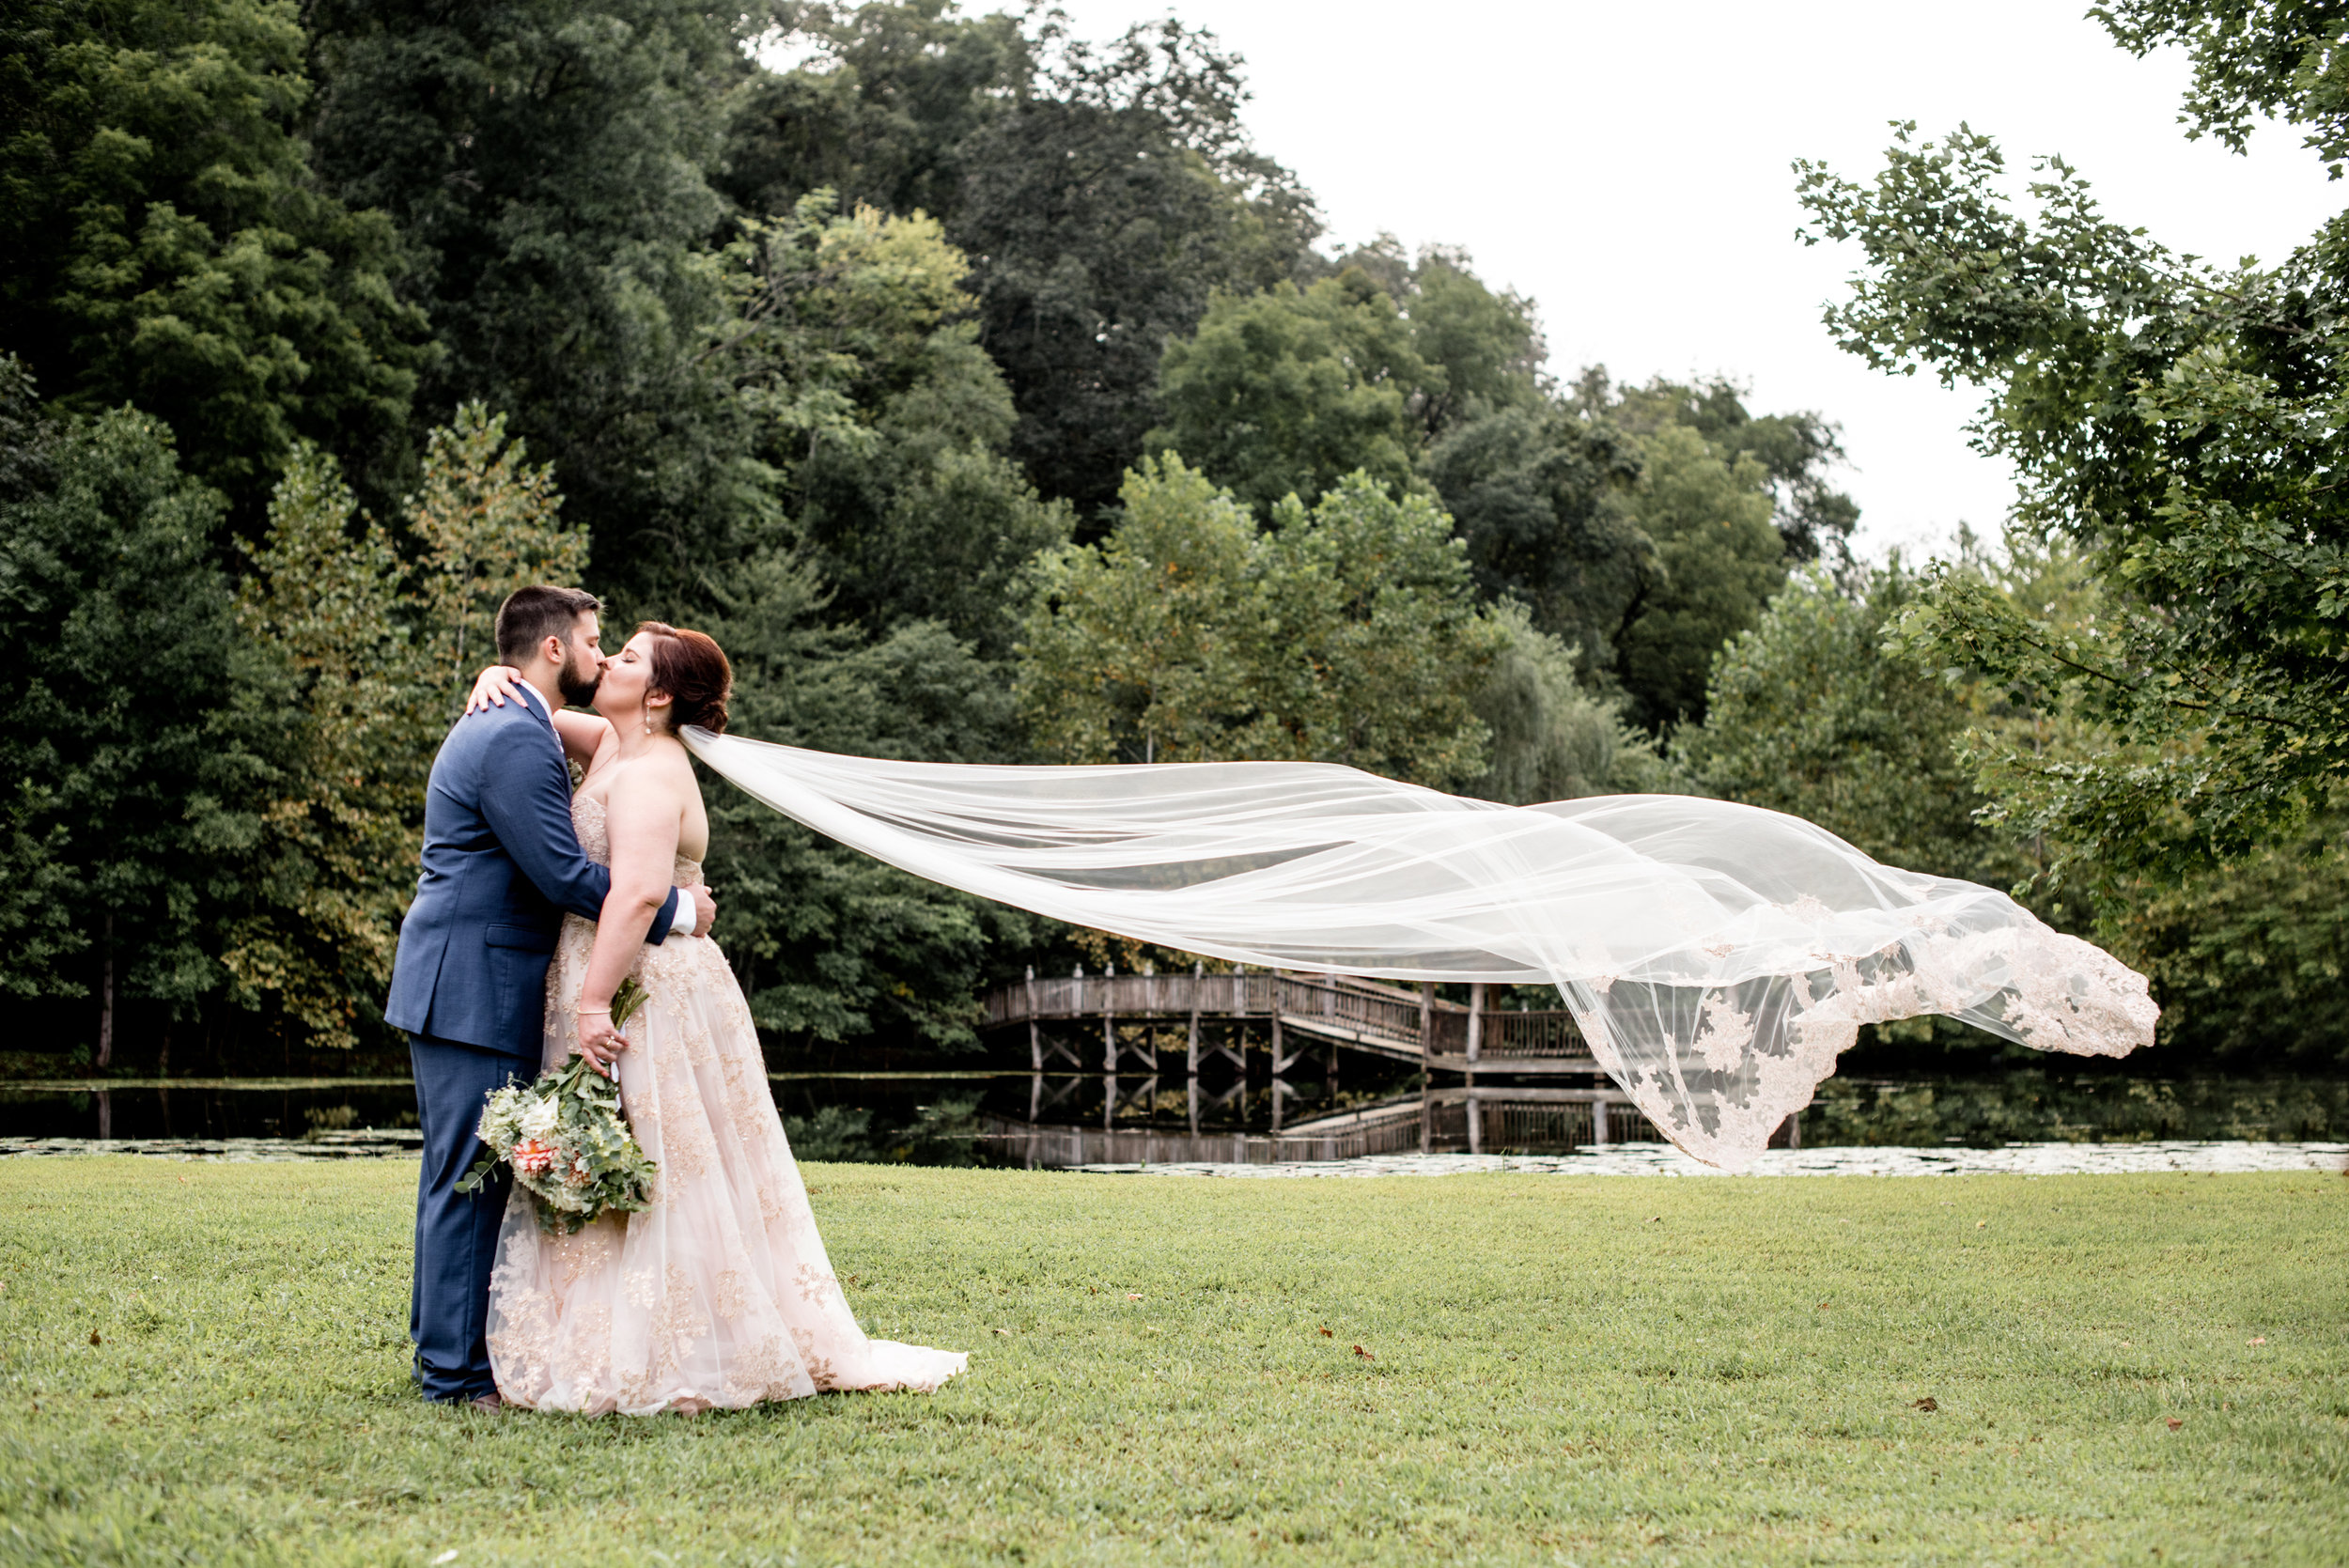 cathedral veil blows in the wind as bride and groom embrace at wilderness adventure